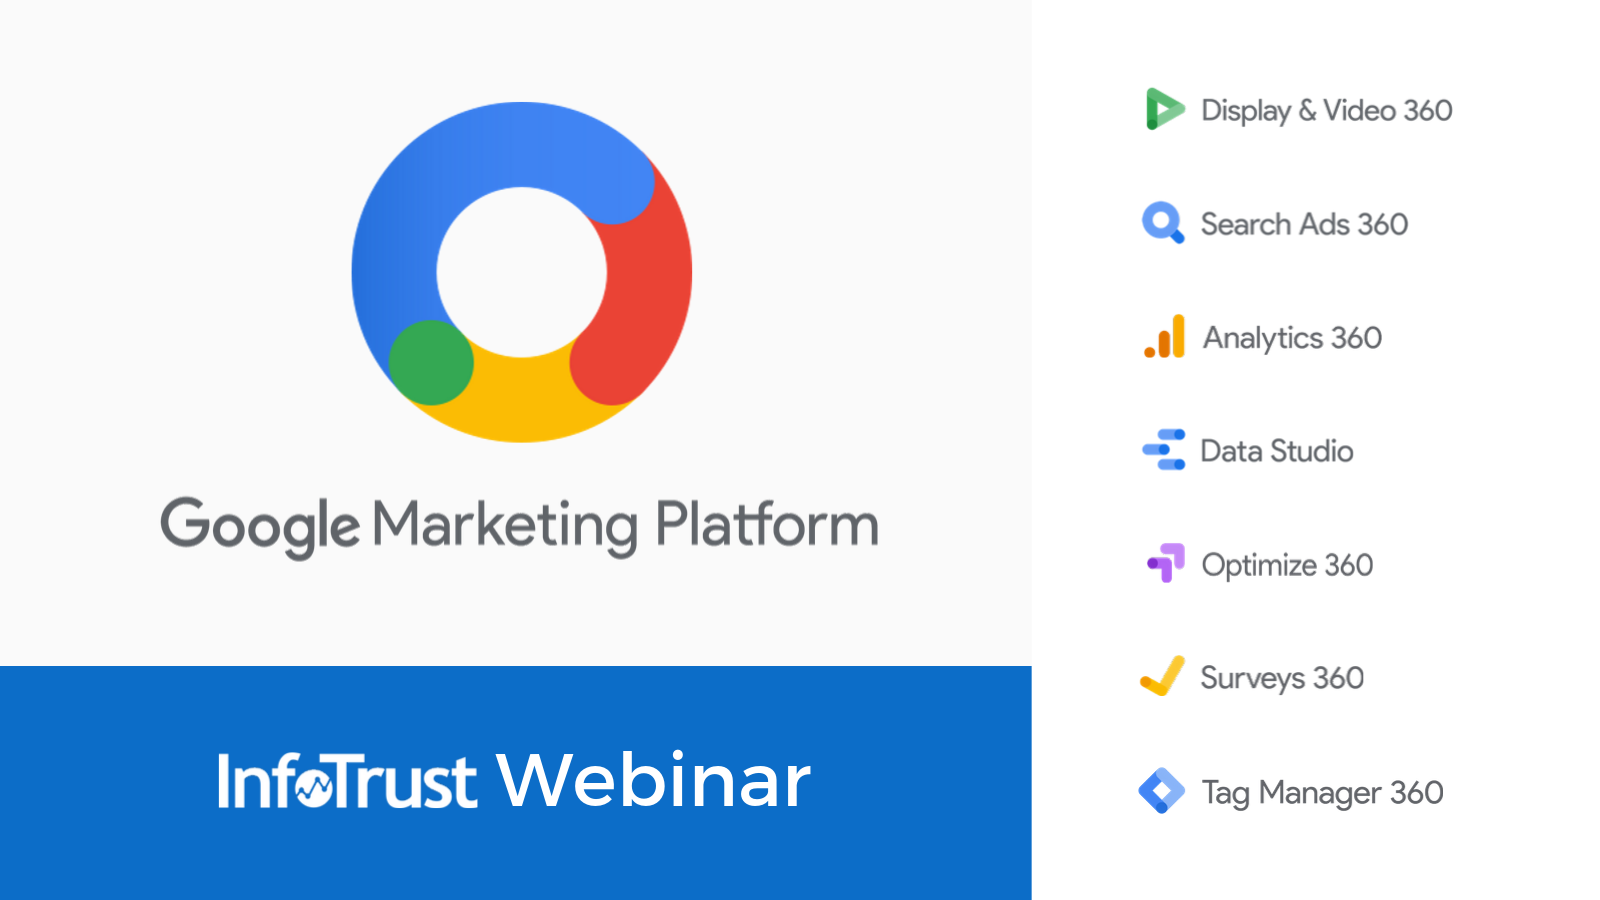 Get to Know All Products Available in the Google Marketing Platform